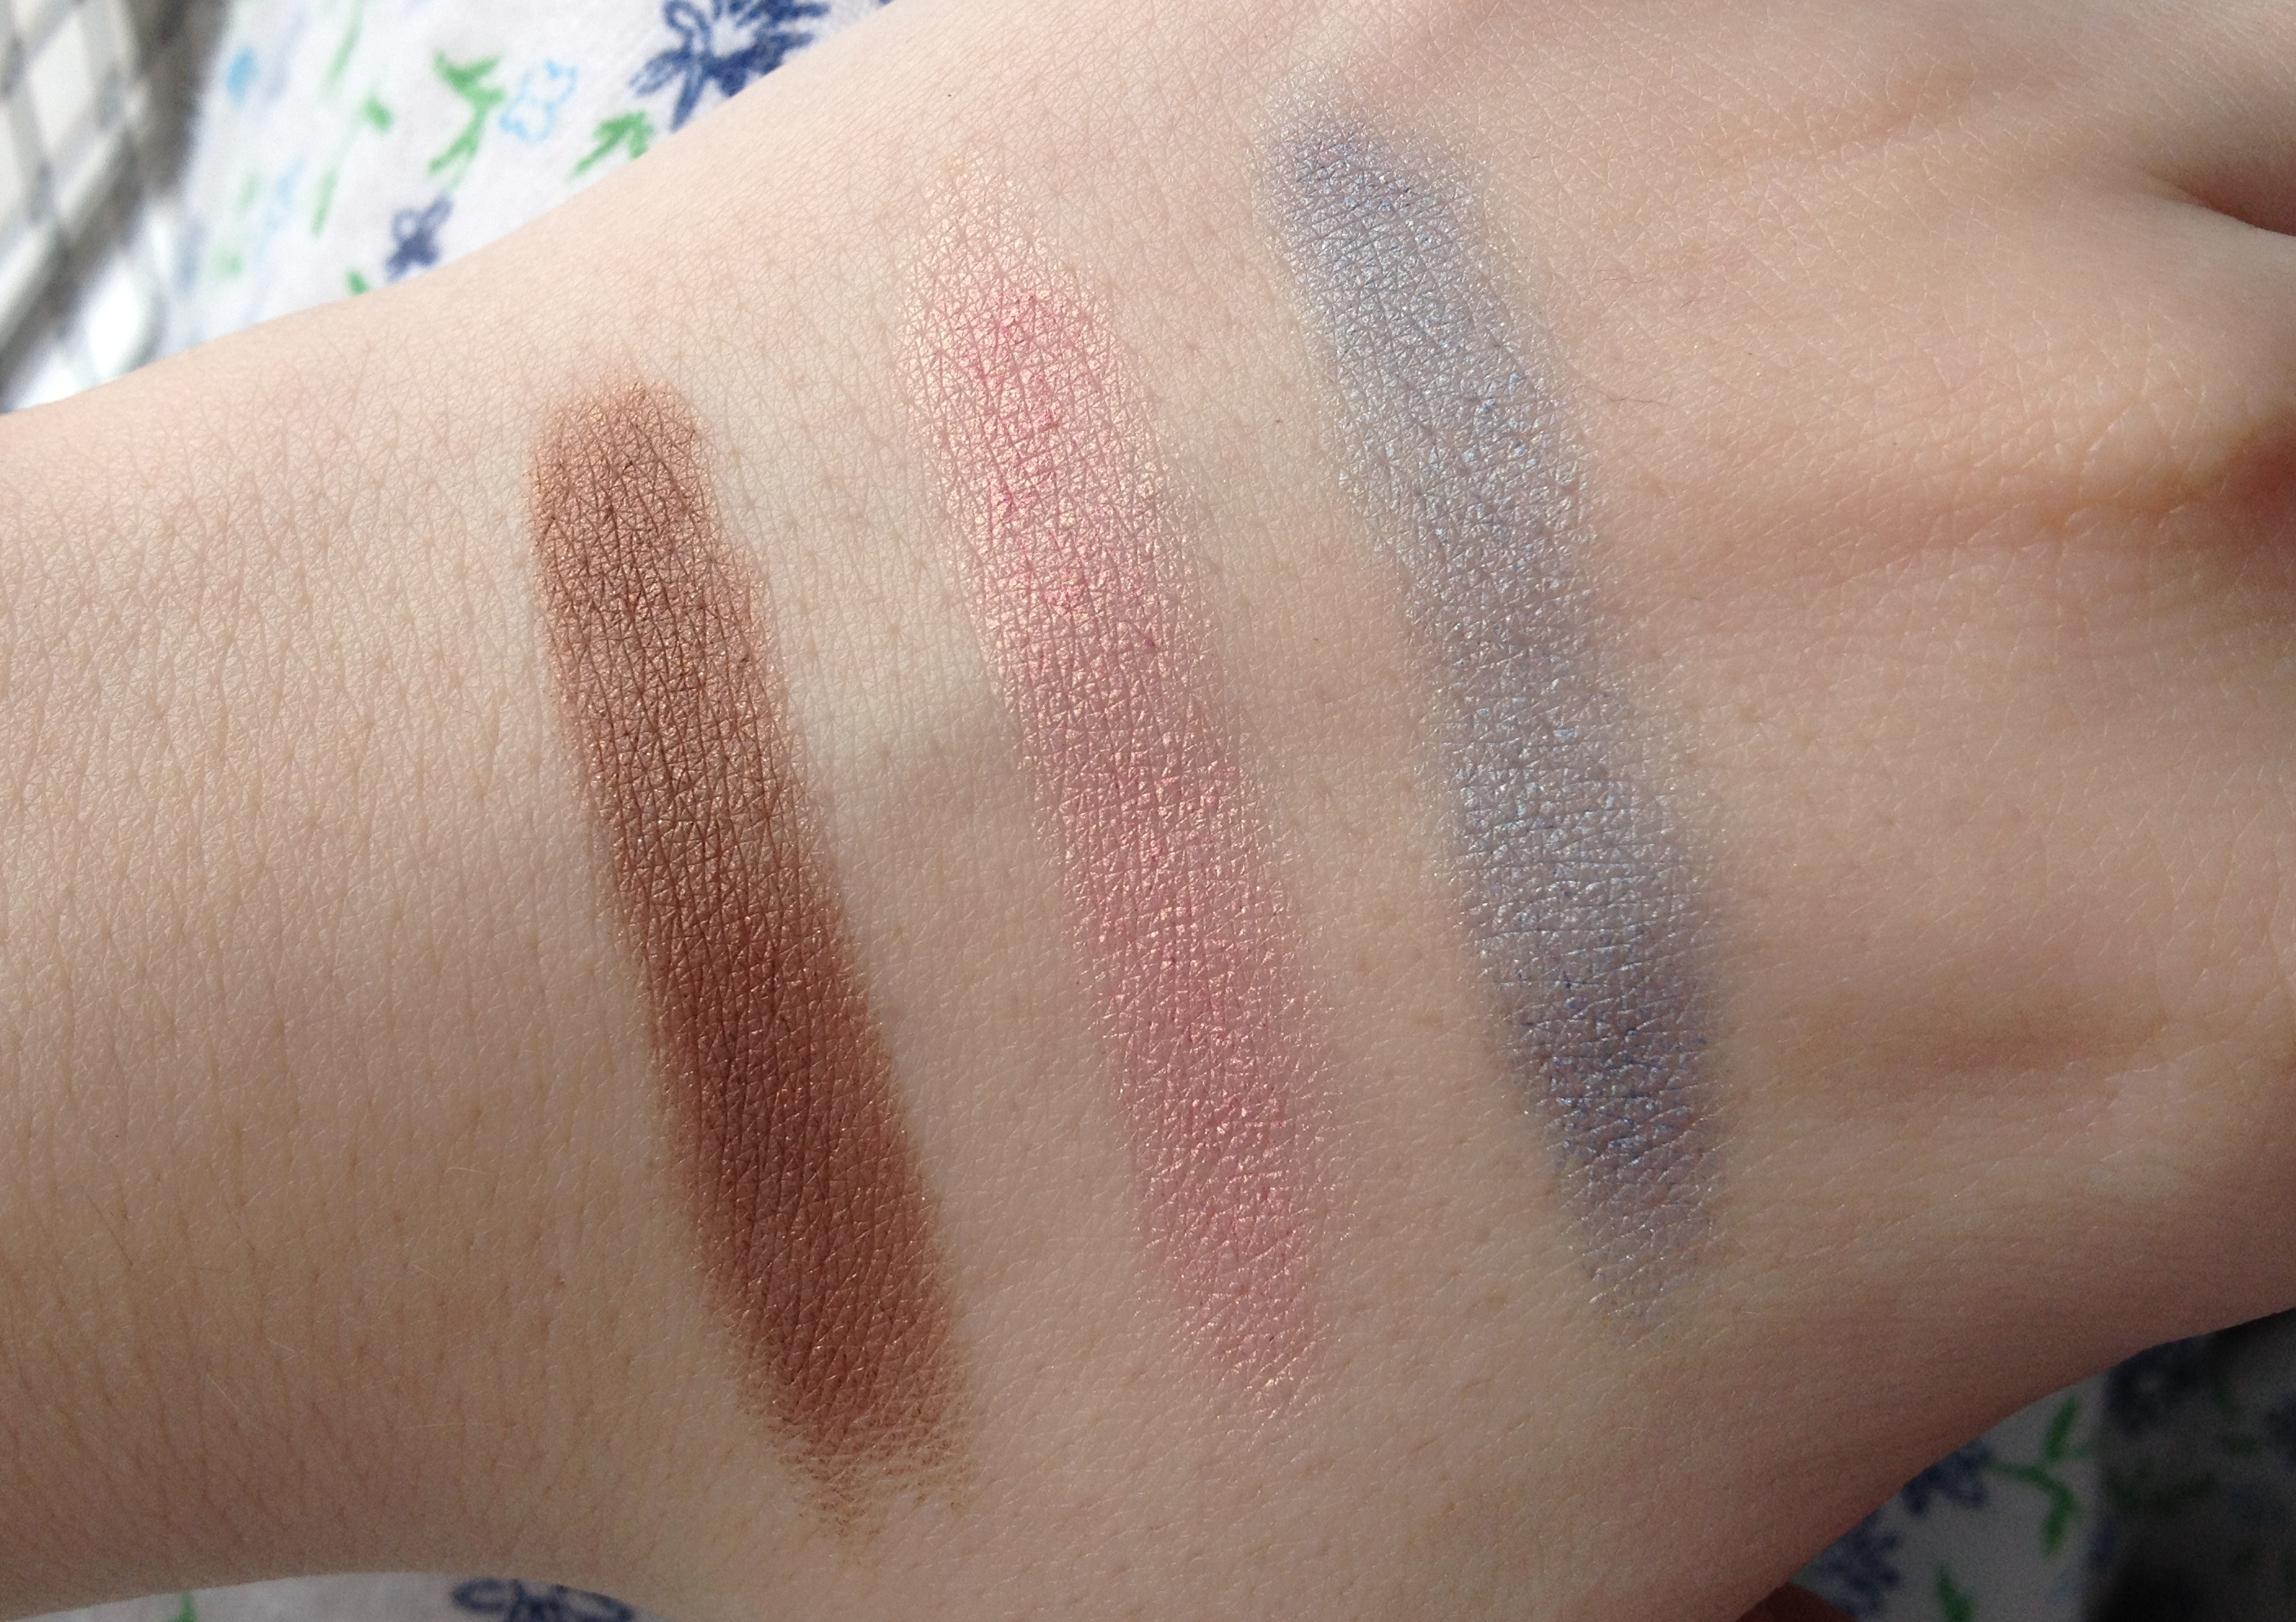 Chubby Stick Shadow Tint For Eyes by Clinique #21